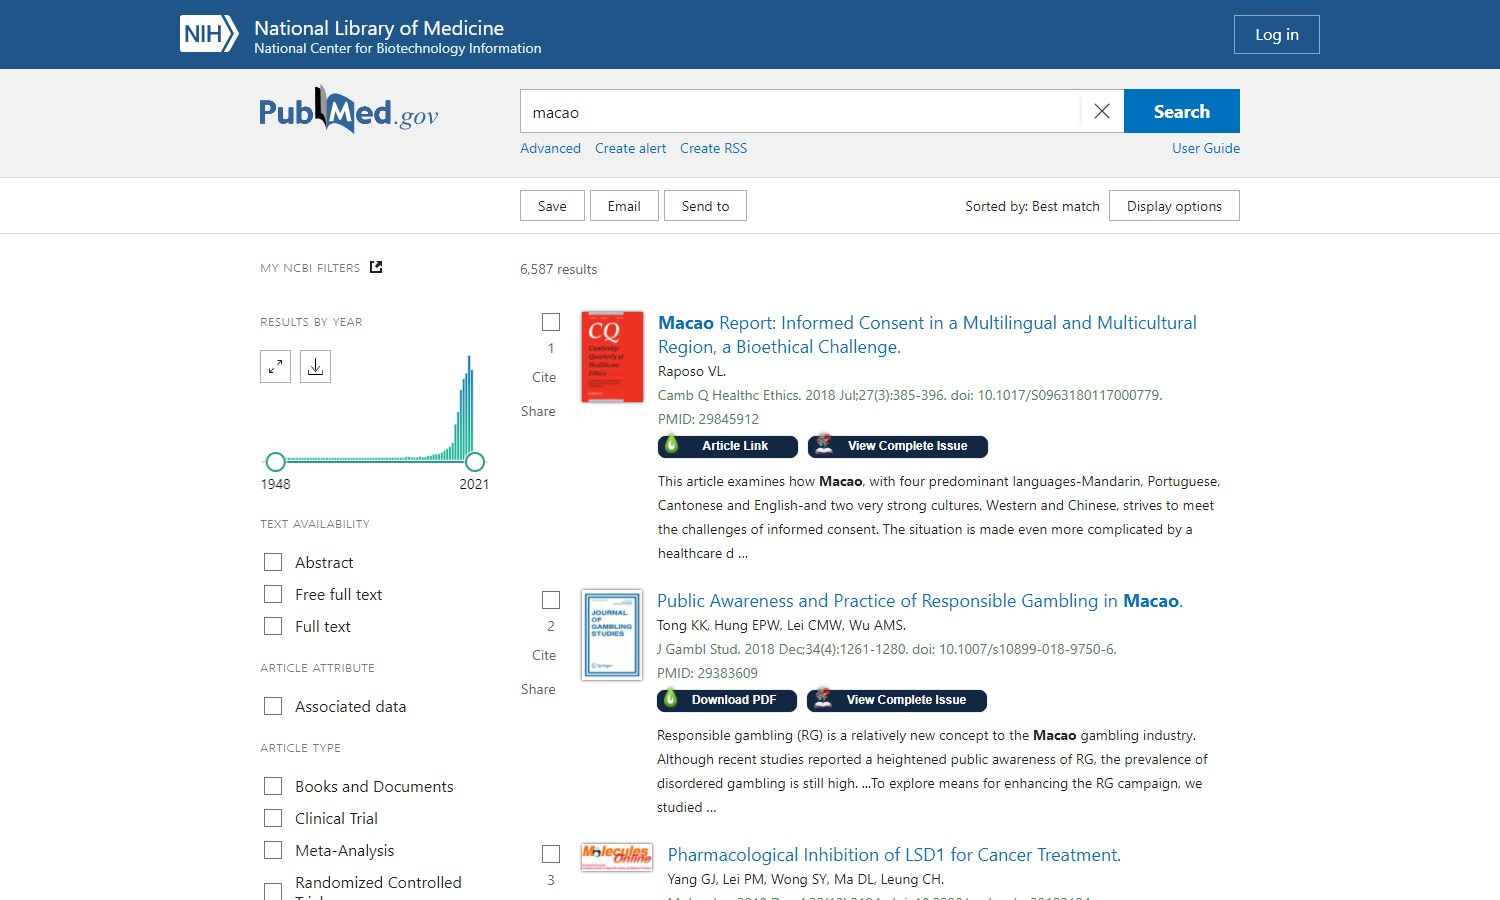 LibKey Nomad Working with PubMed